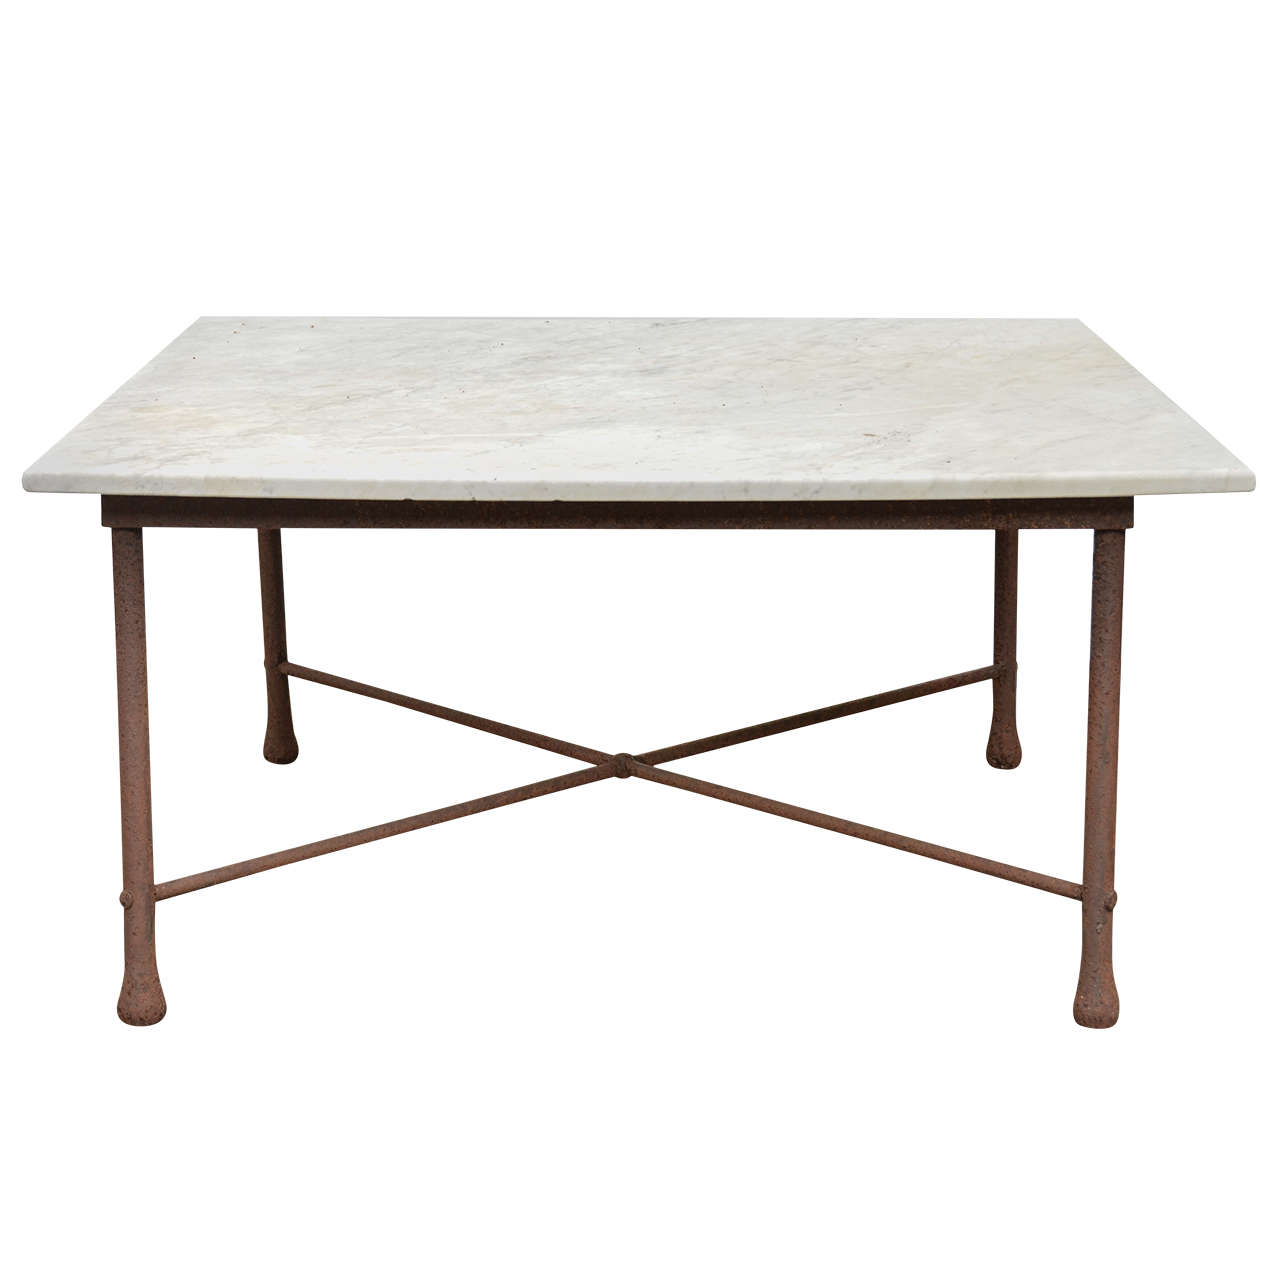 American 1970s wrought iron coffee table with marble top at 1stdibs Coffee tables with marble tops